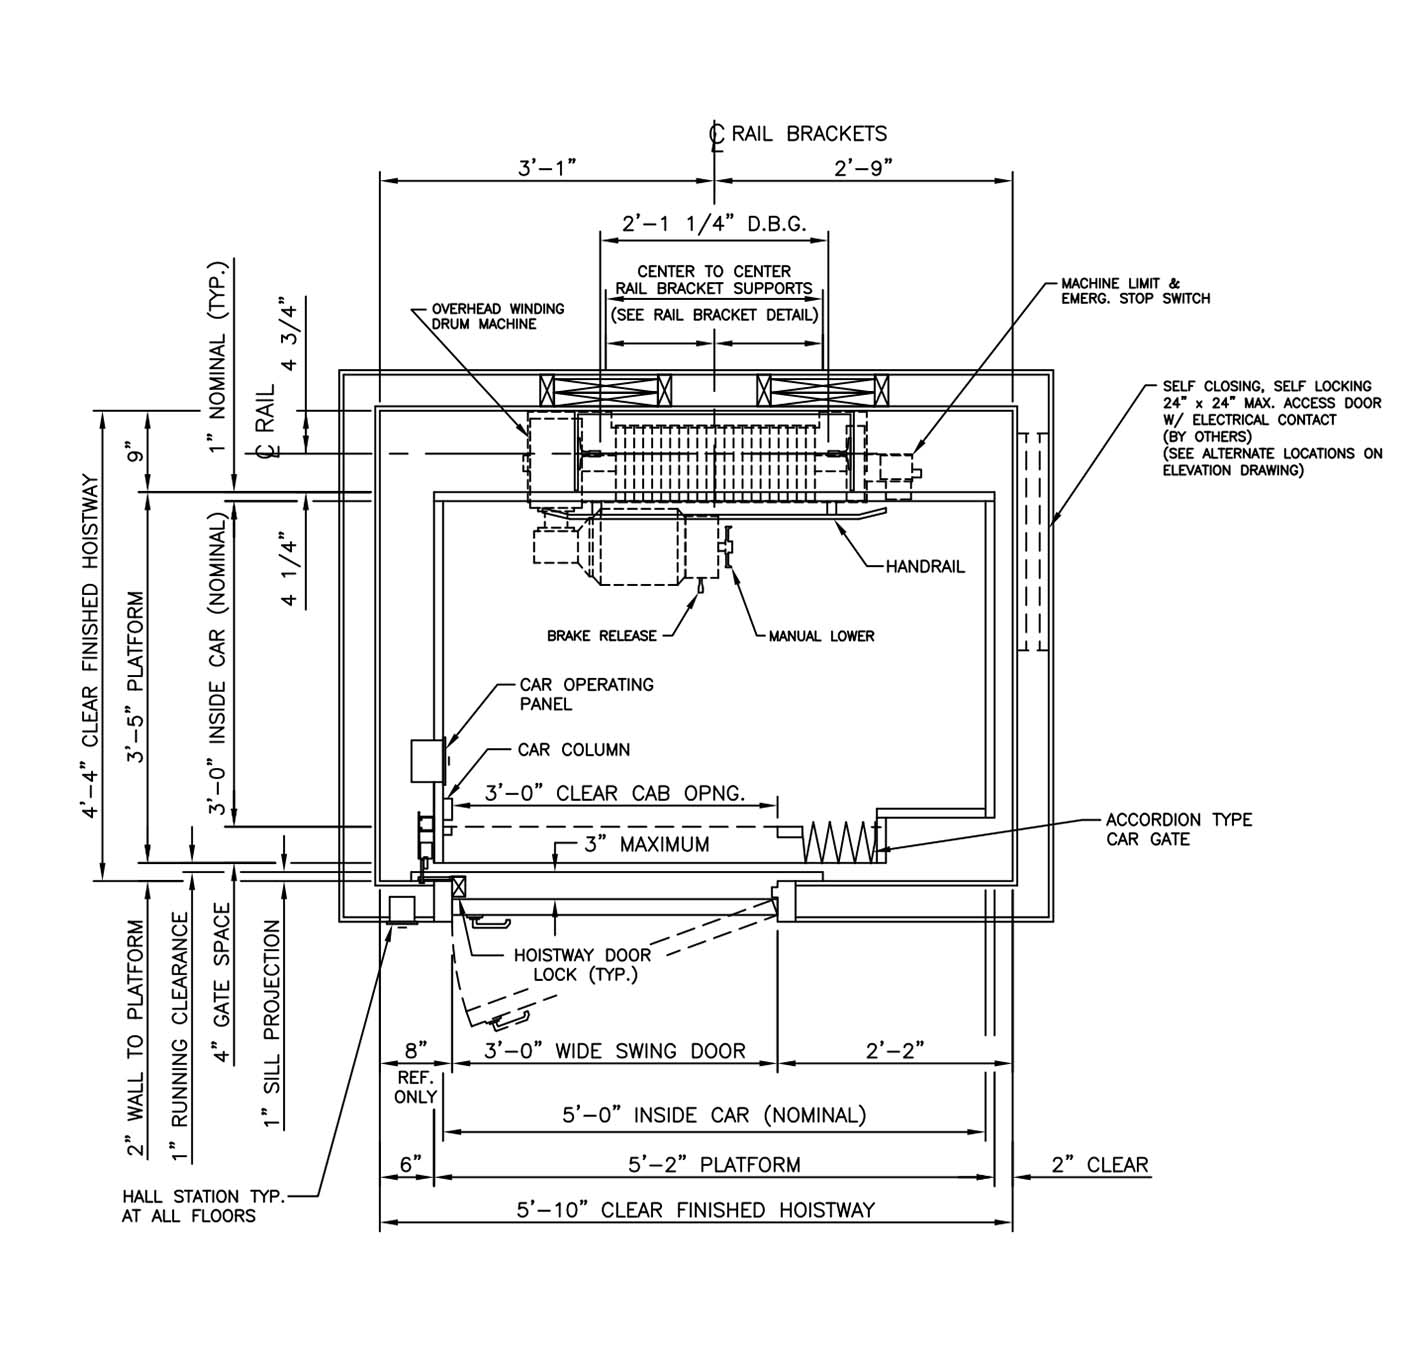 Pin Cad Drawing Engineering Lift Elevator Car Plans On